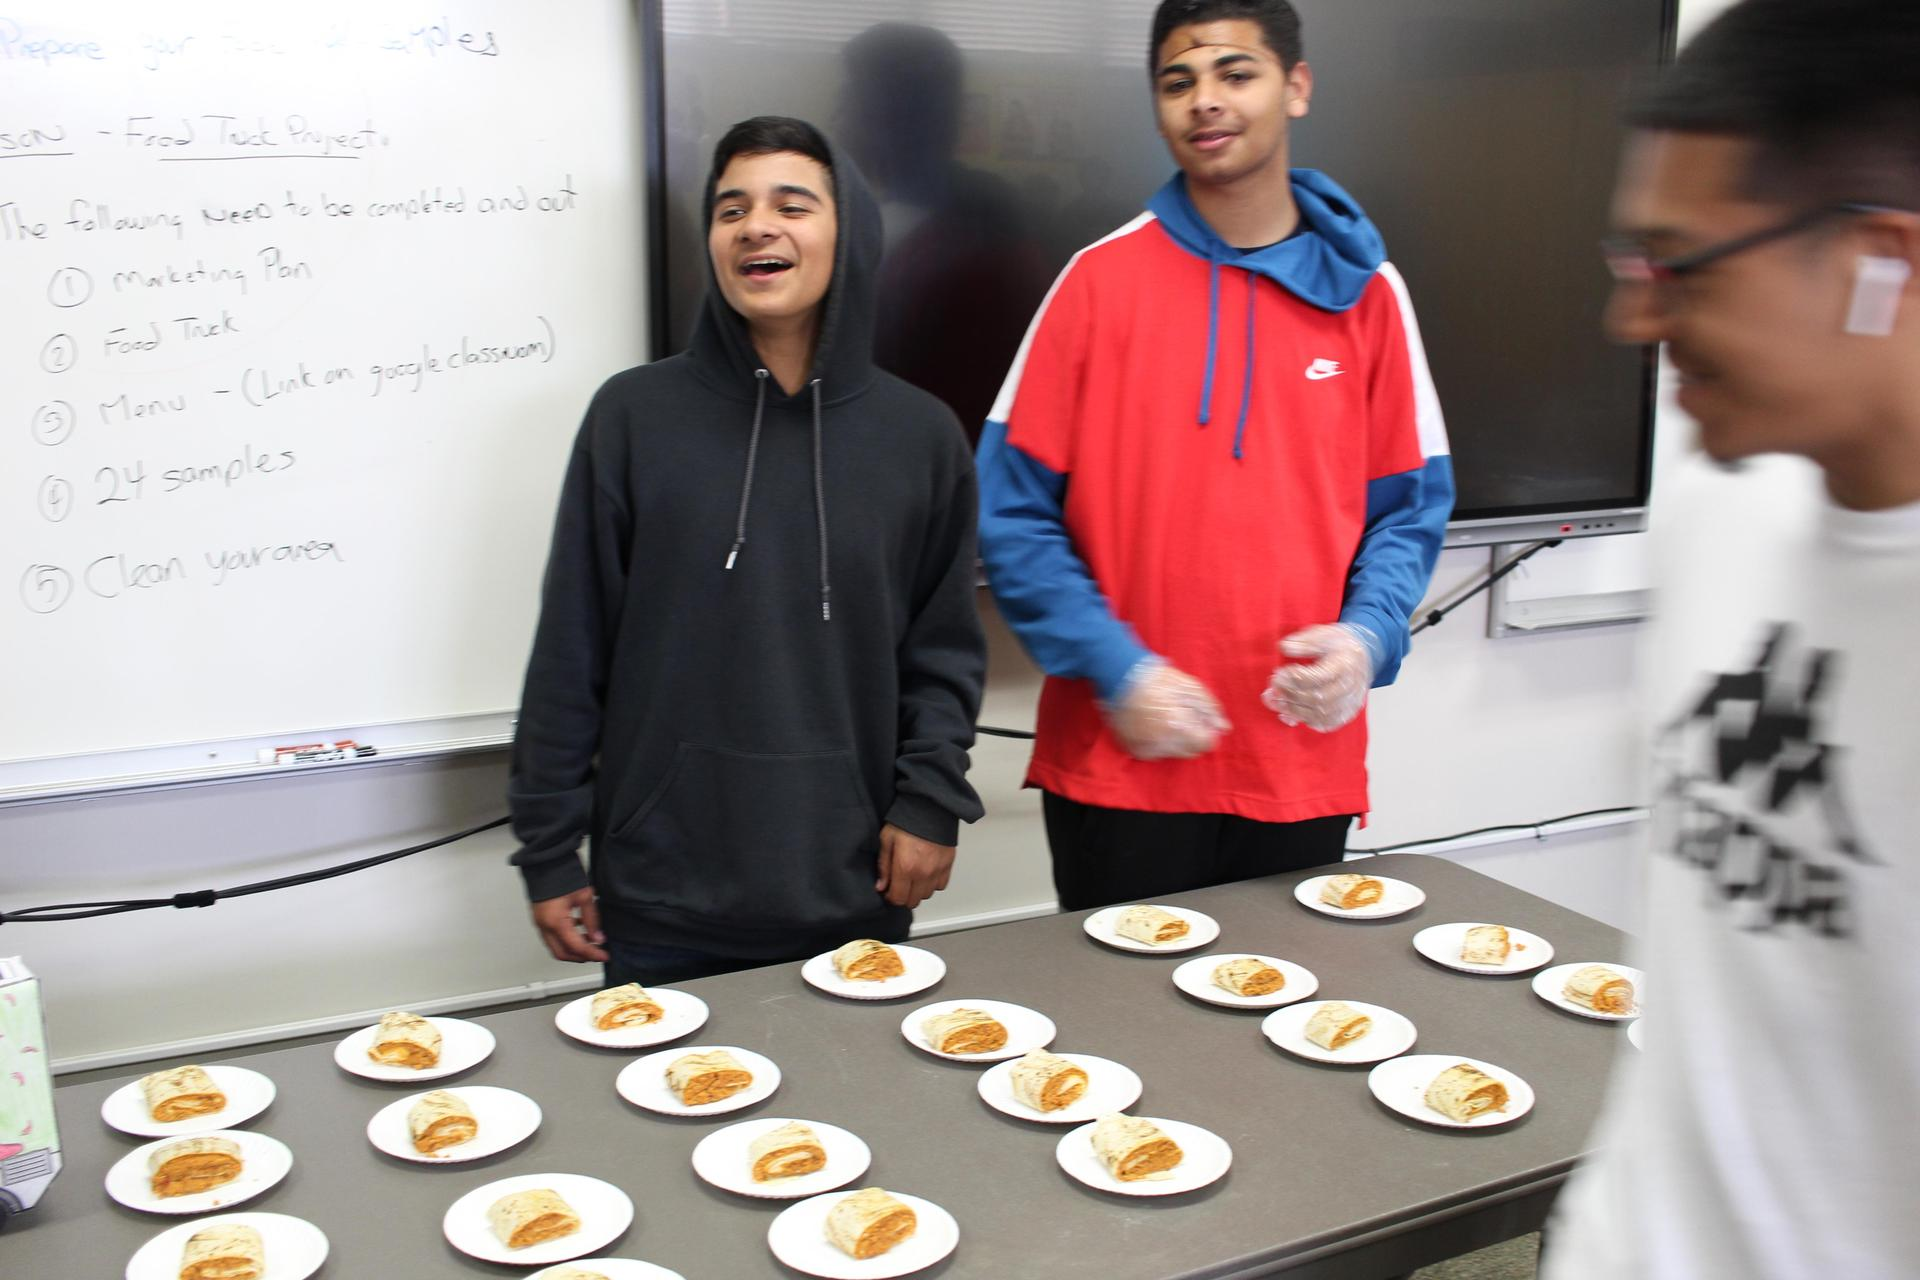 Culinary students presenting their food truck treats